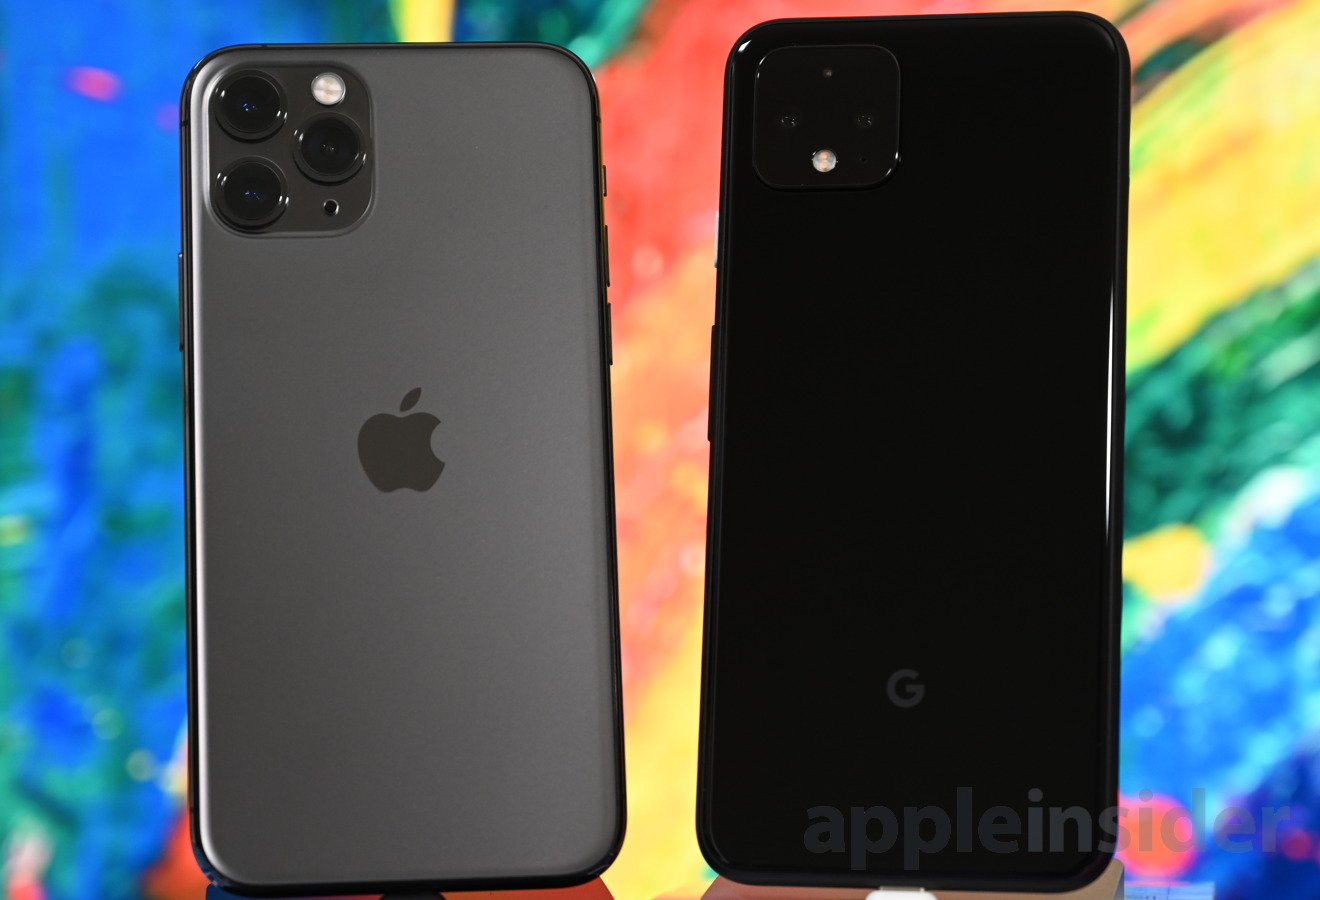 iPhone 11 Pro (left) and Pixel 4 (right)